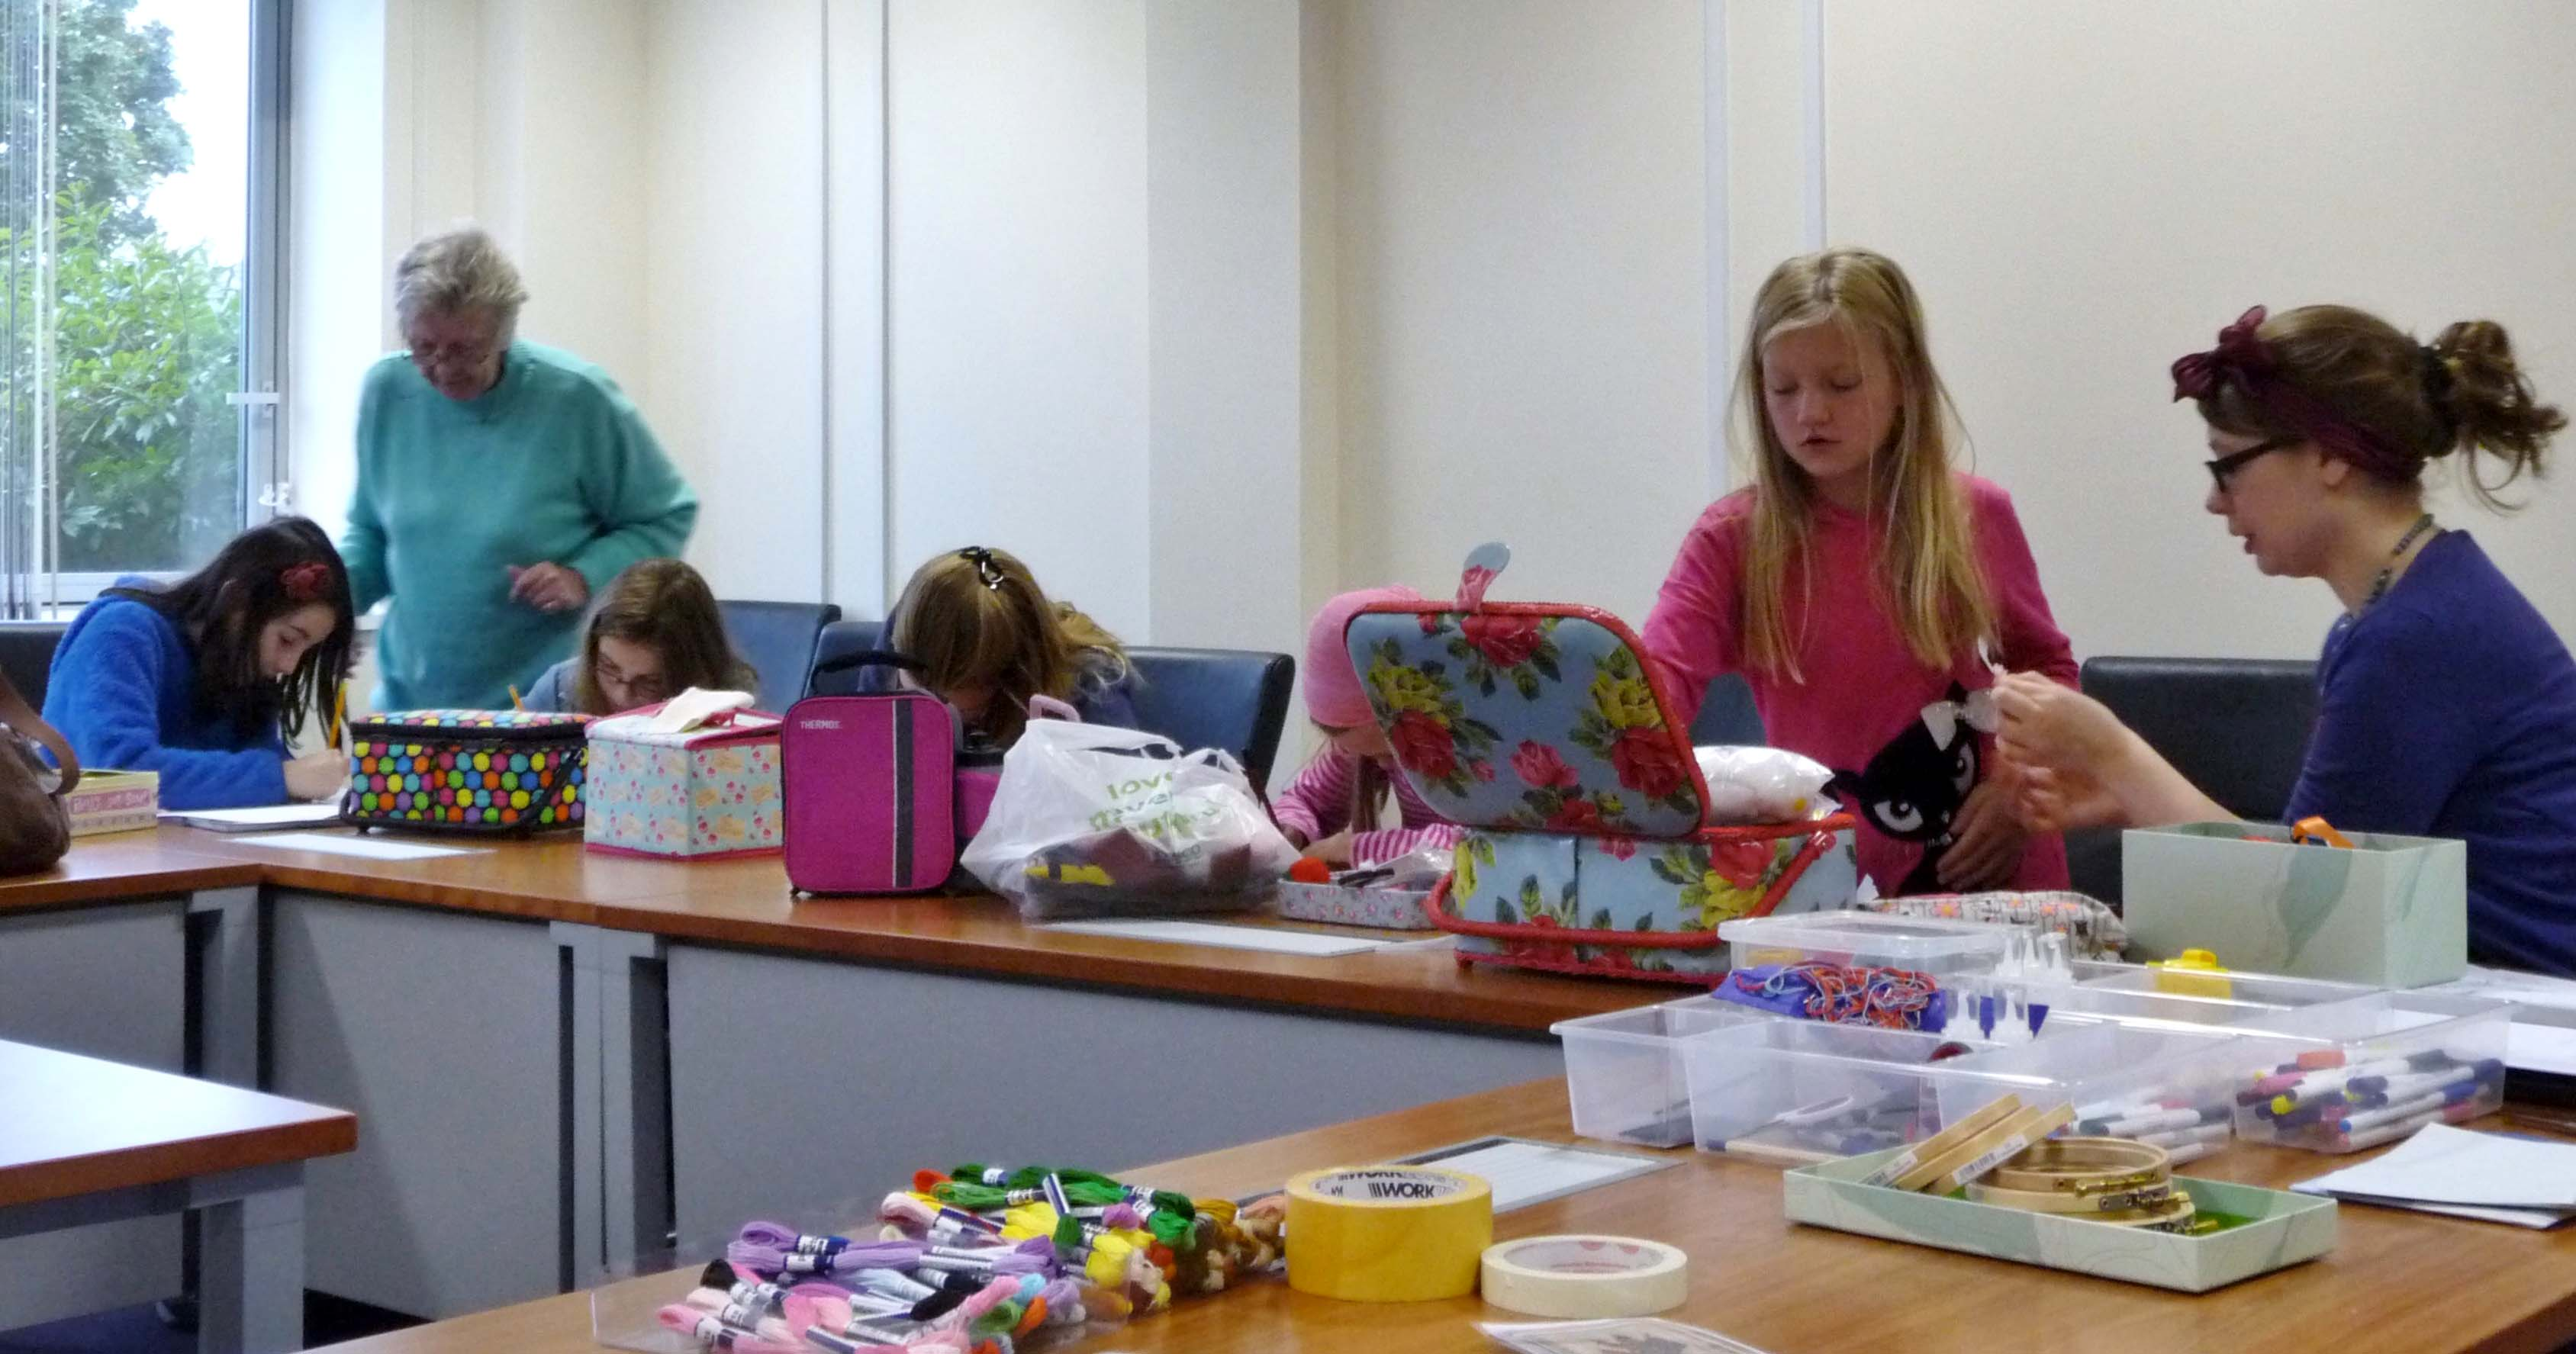 some of our Group are designing postcards to embroider with Val Heron and Becky Waite to assist